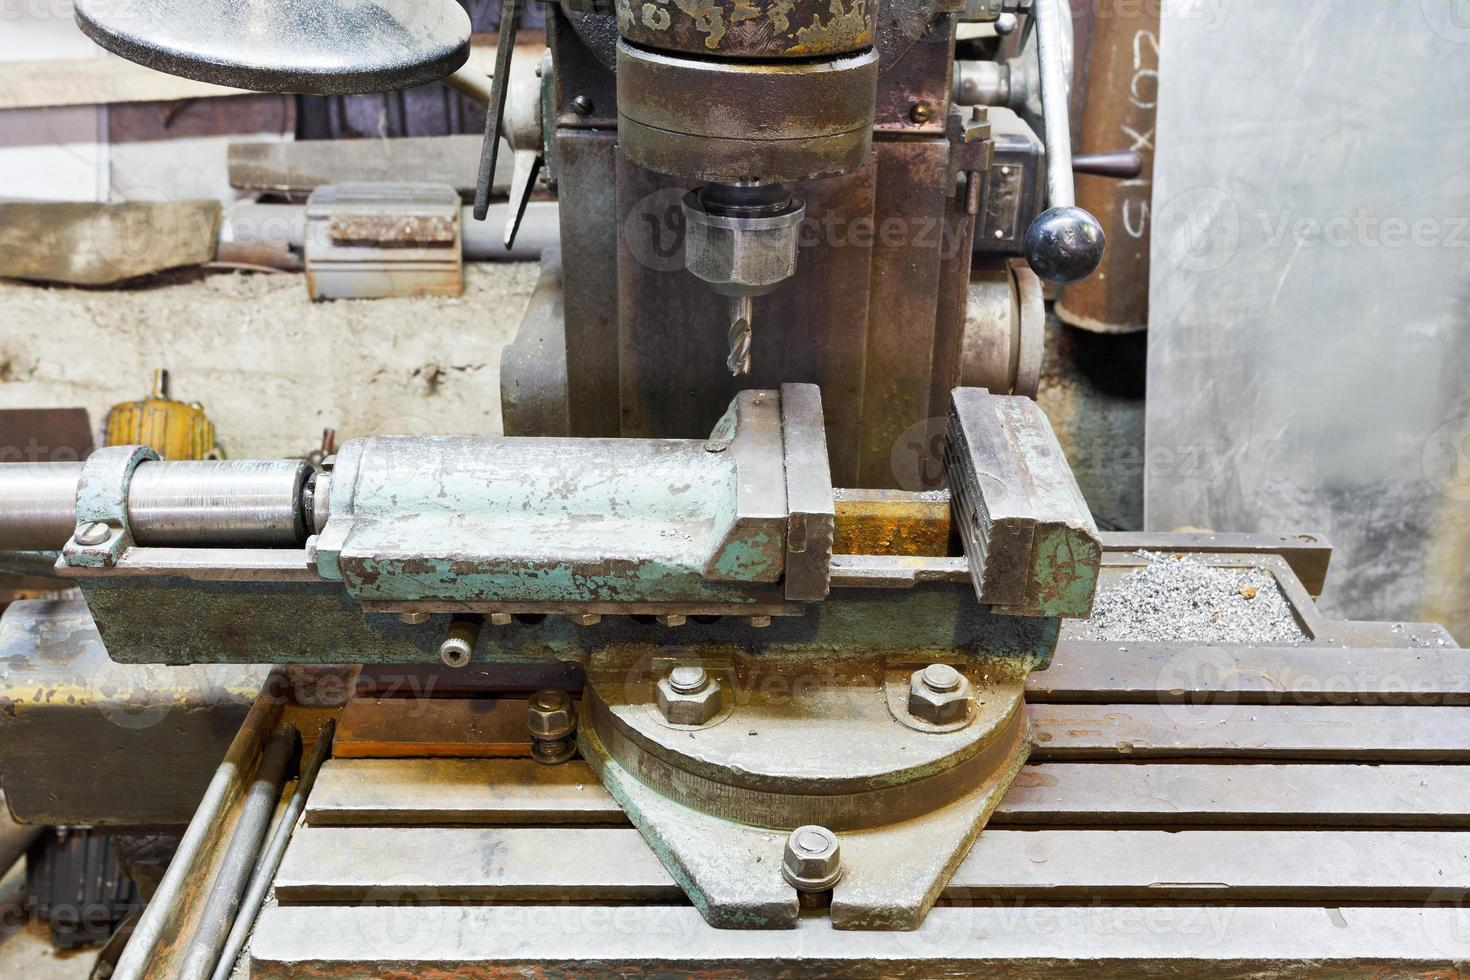 vice and drill of old boring machine close up photo